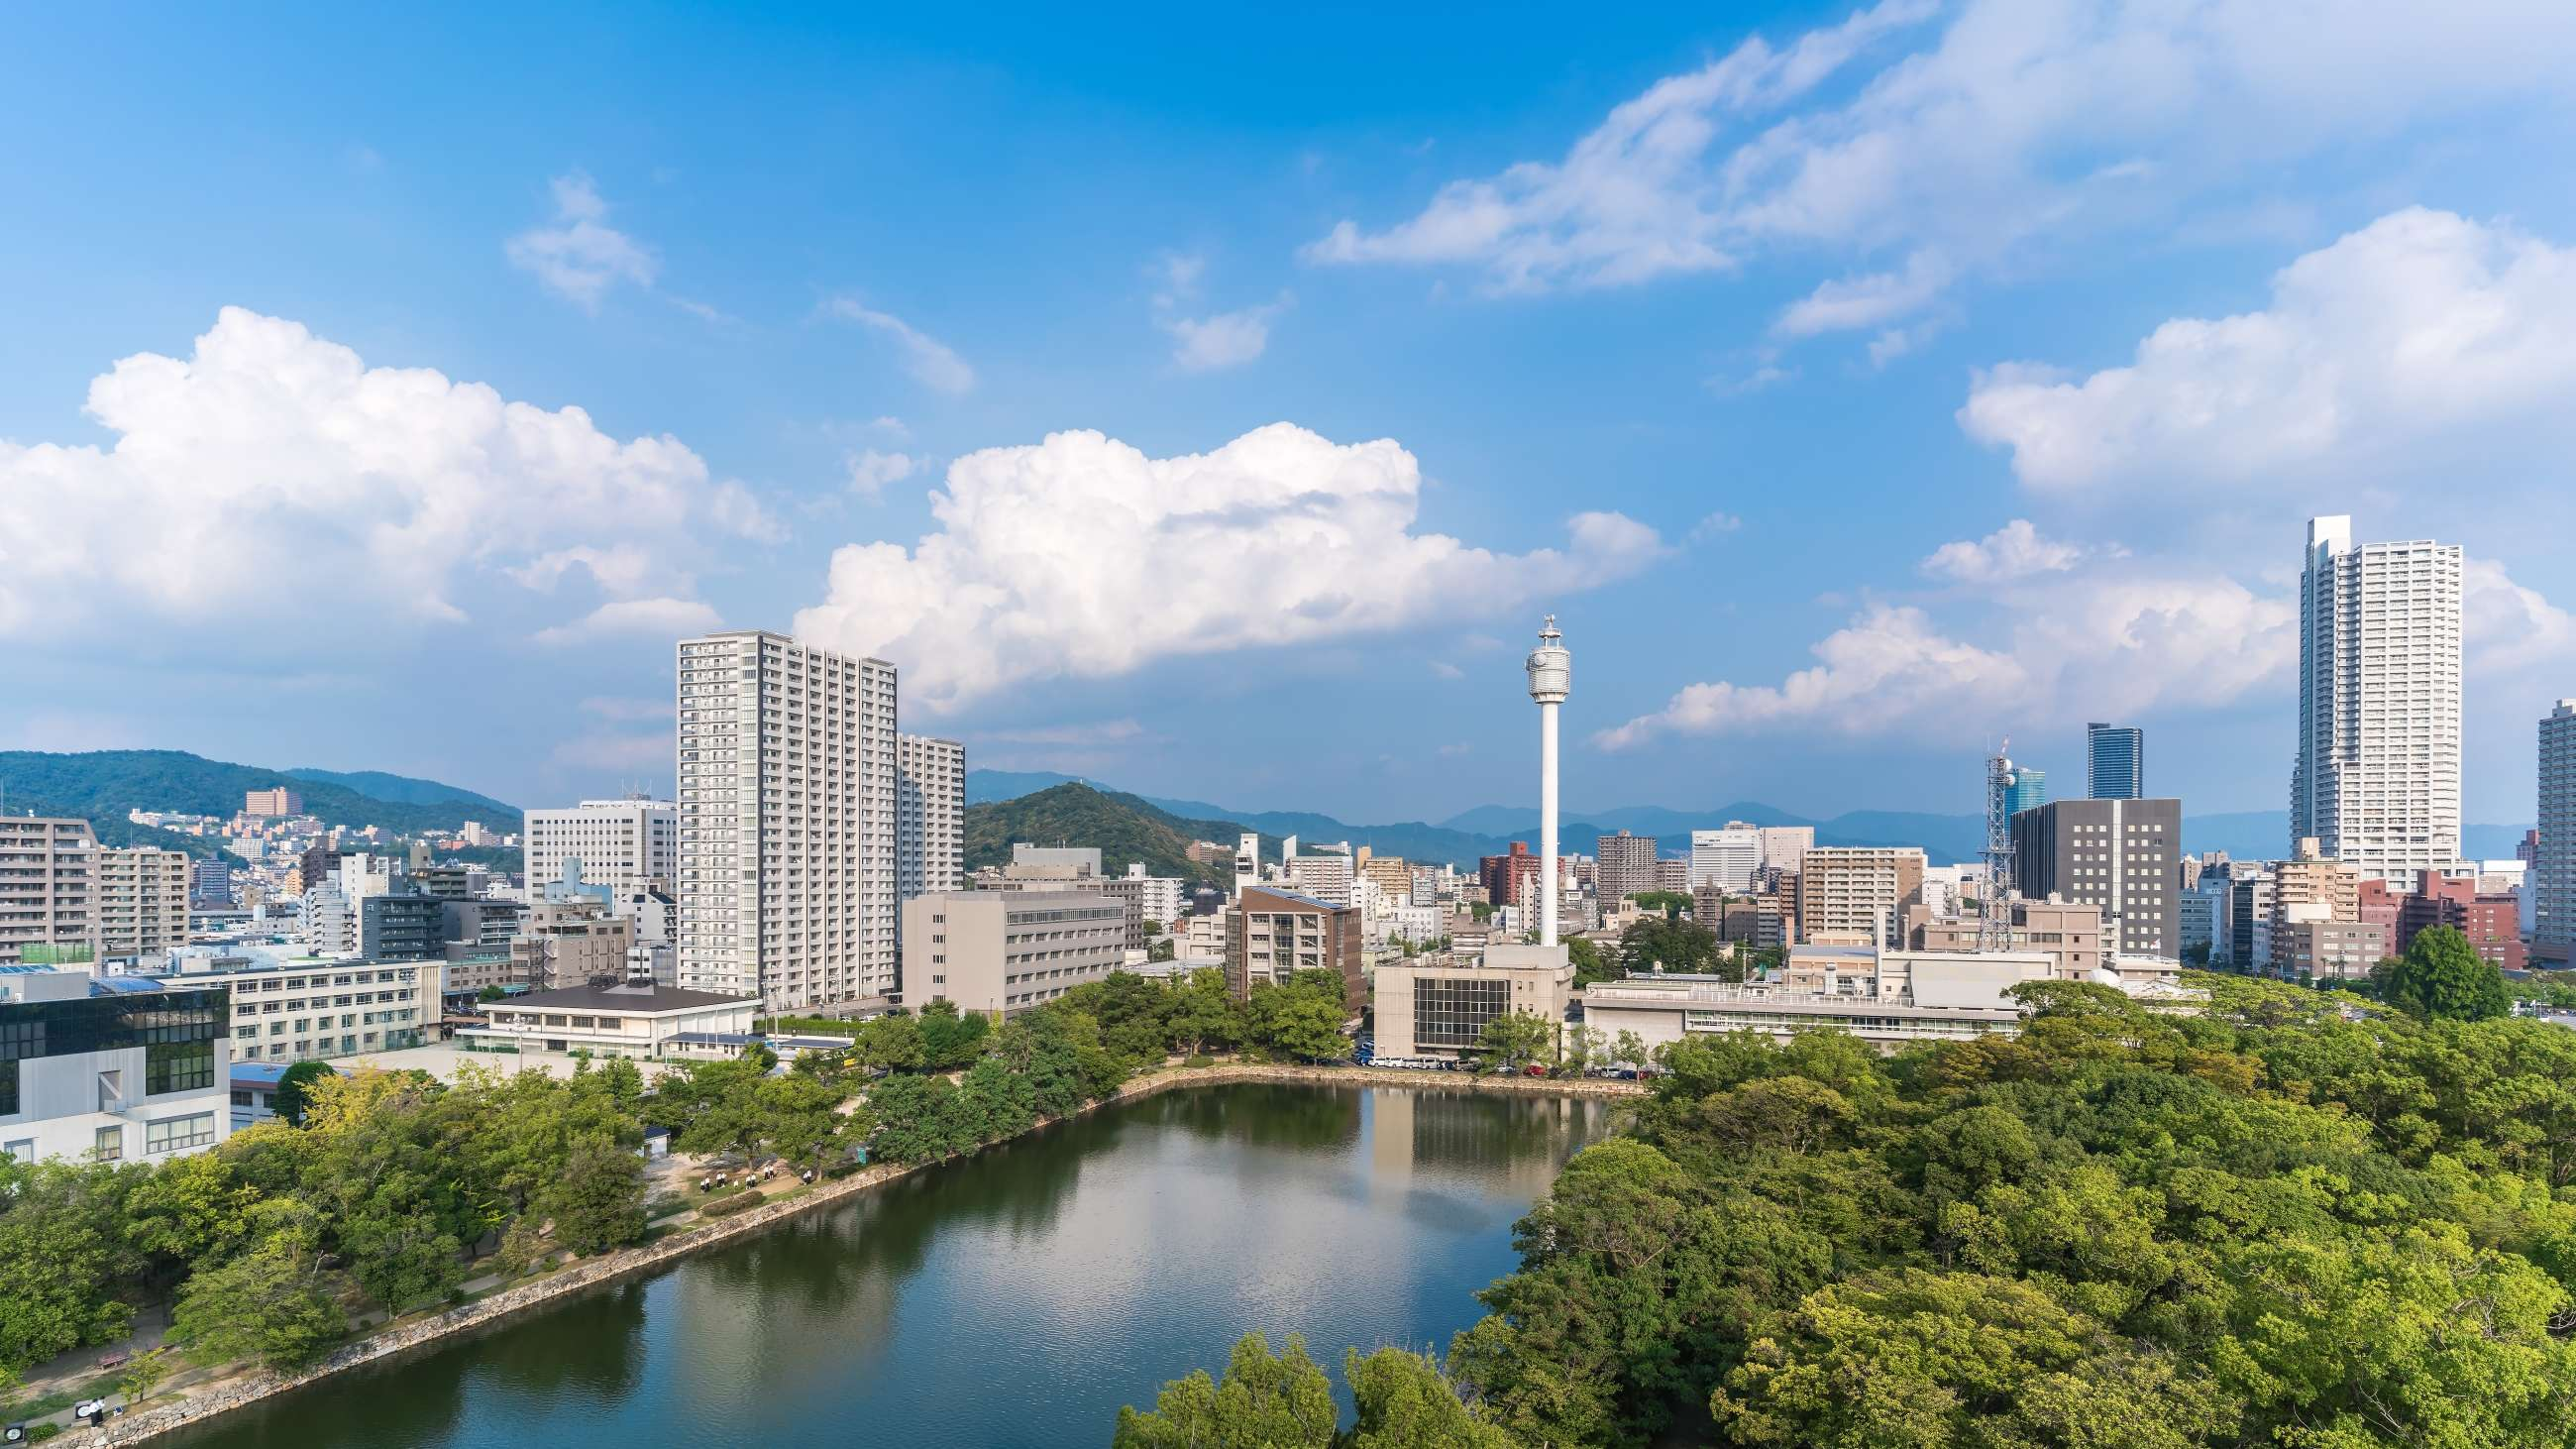 Skyline of Hiroshima